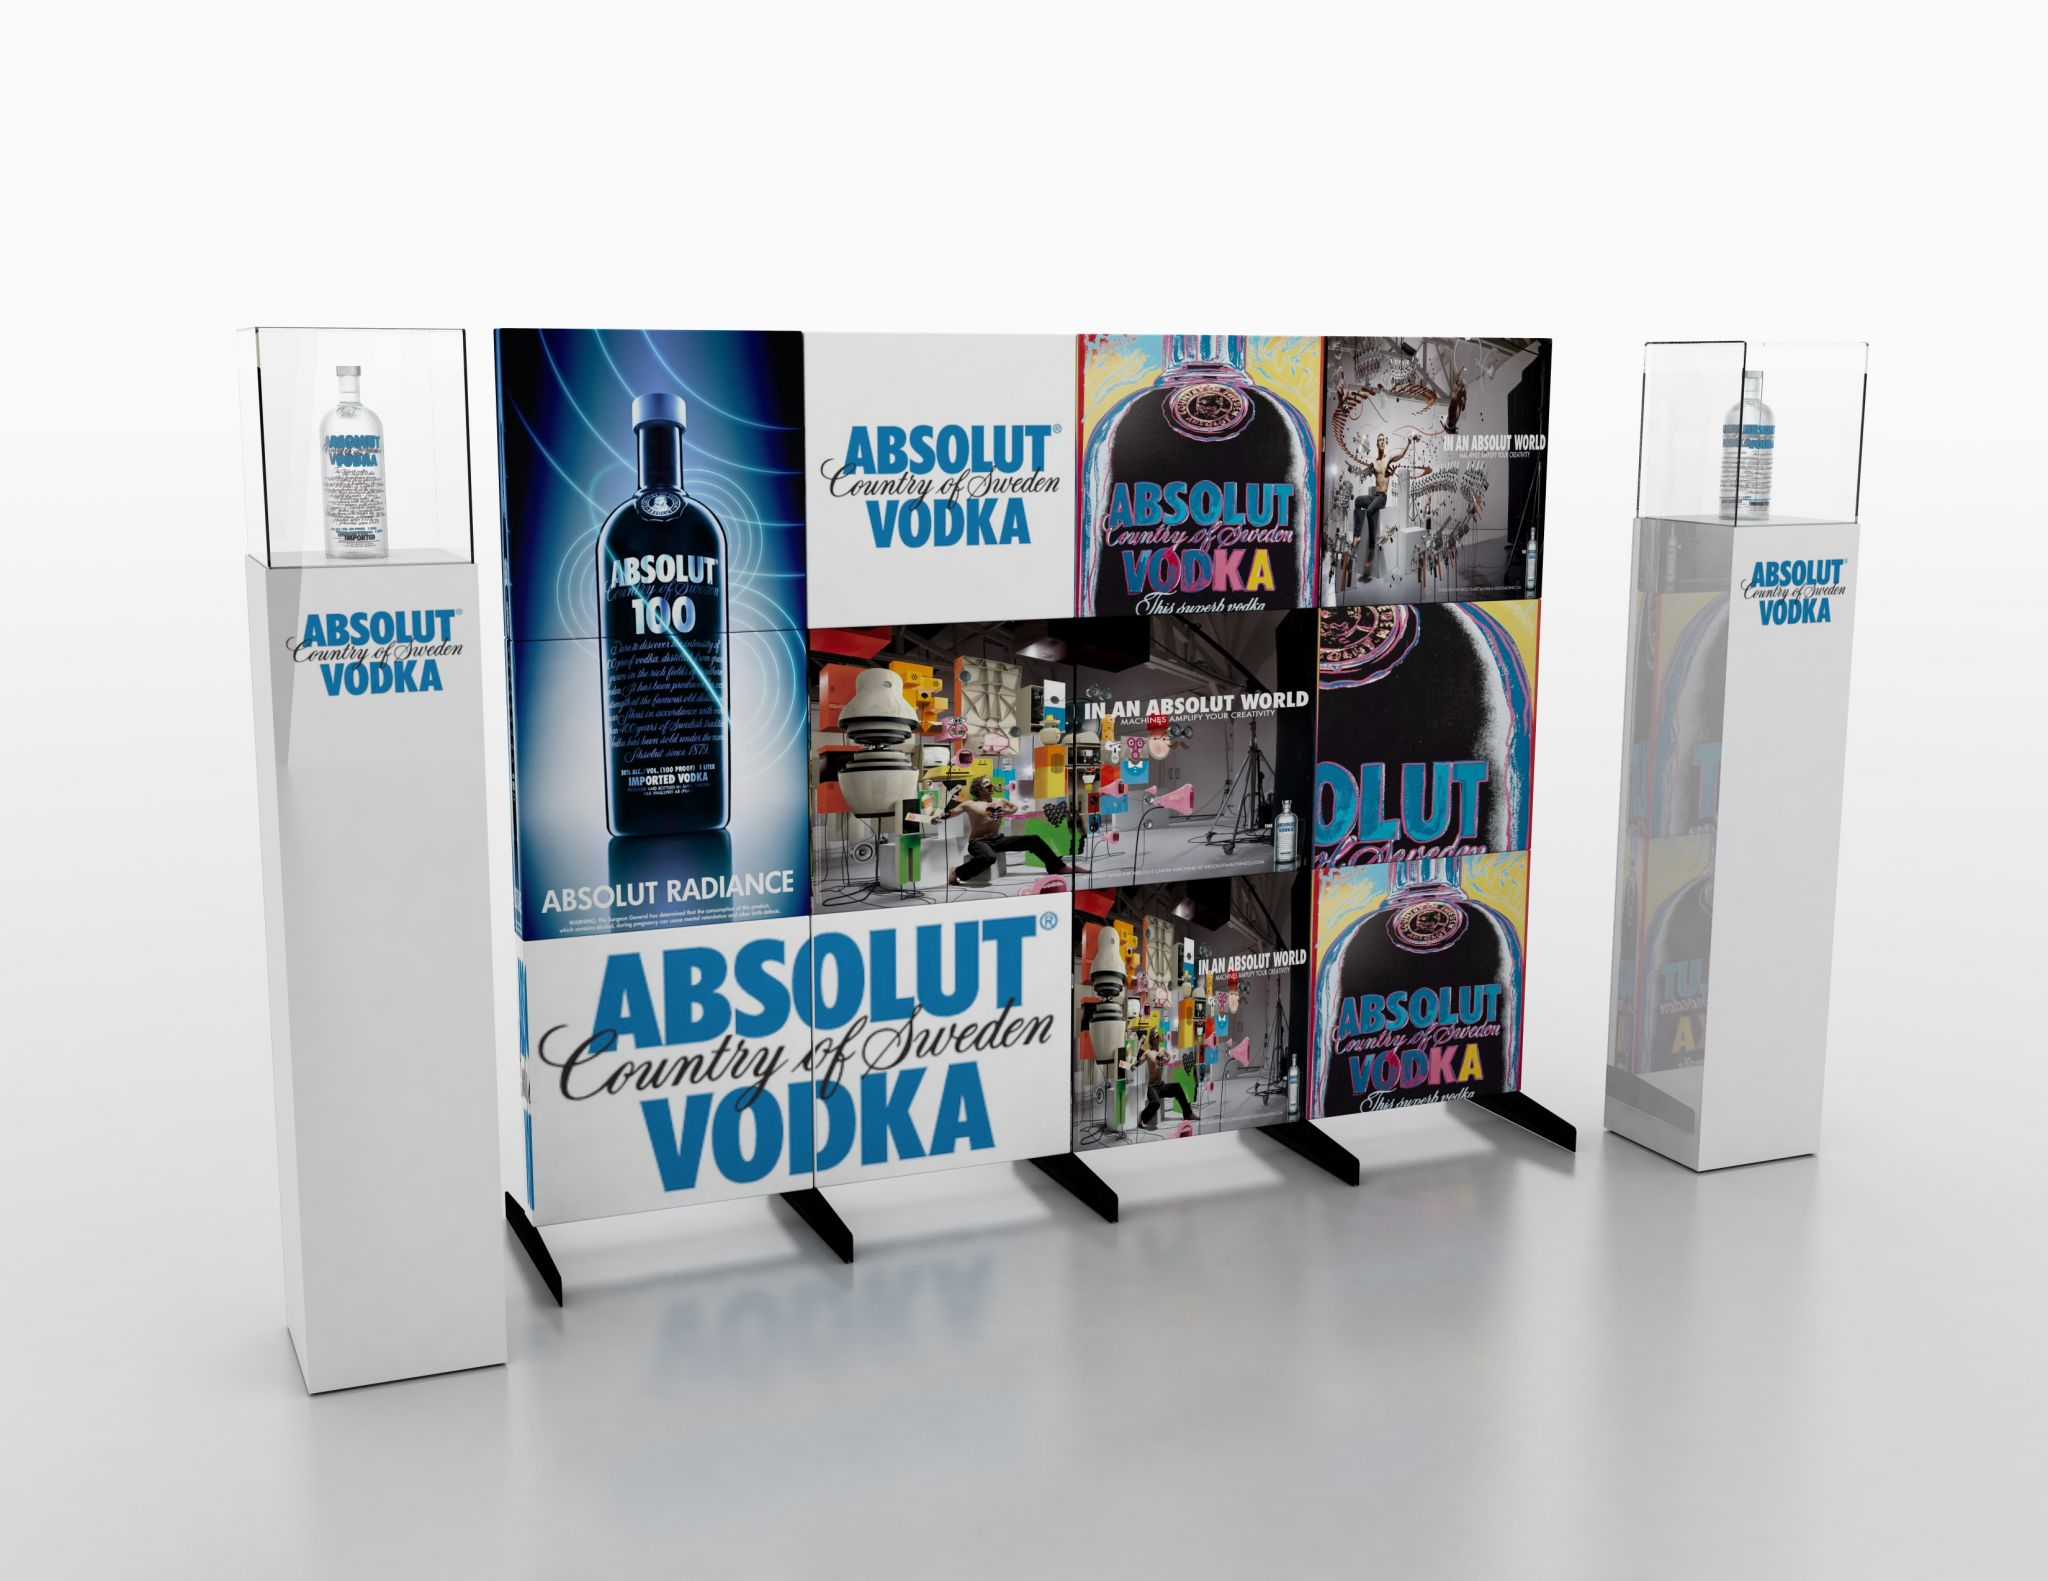 Sungard Exhibition Stand Here Alone : Absolut vodka sign media